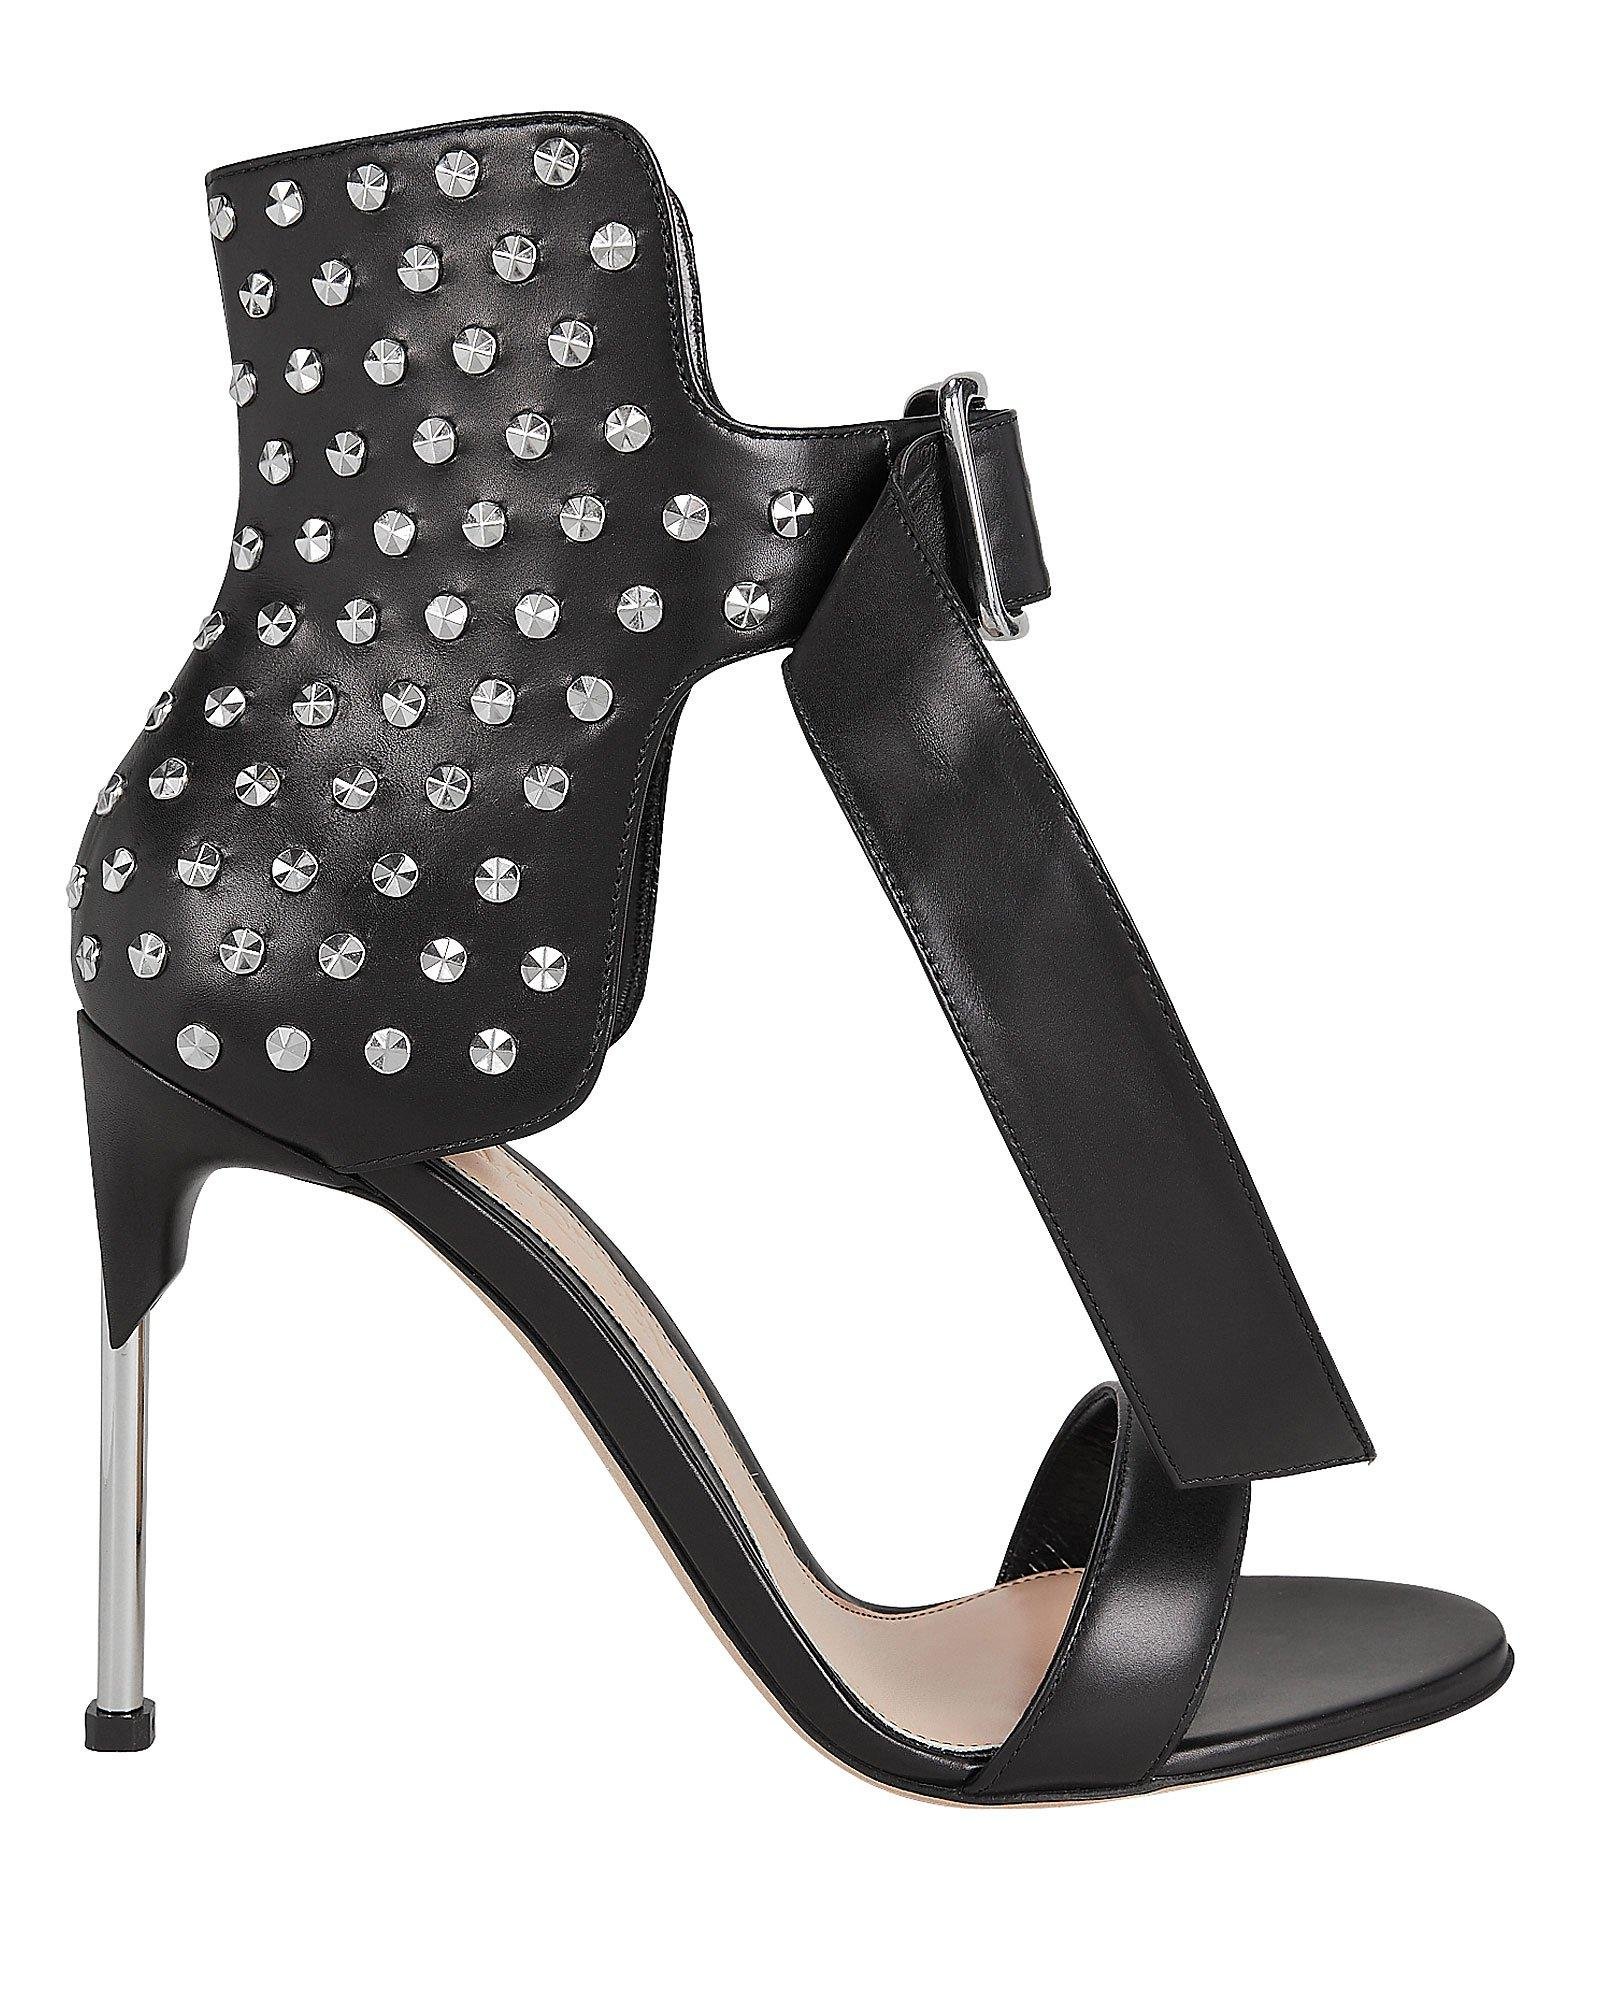 a3ac73b3fd29 Lyst - Alexander McQueen Studded Black Leather Sandals in Black